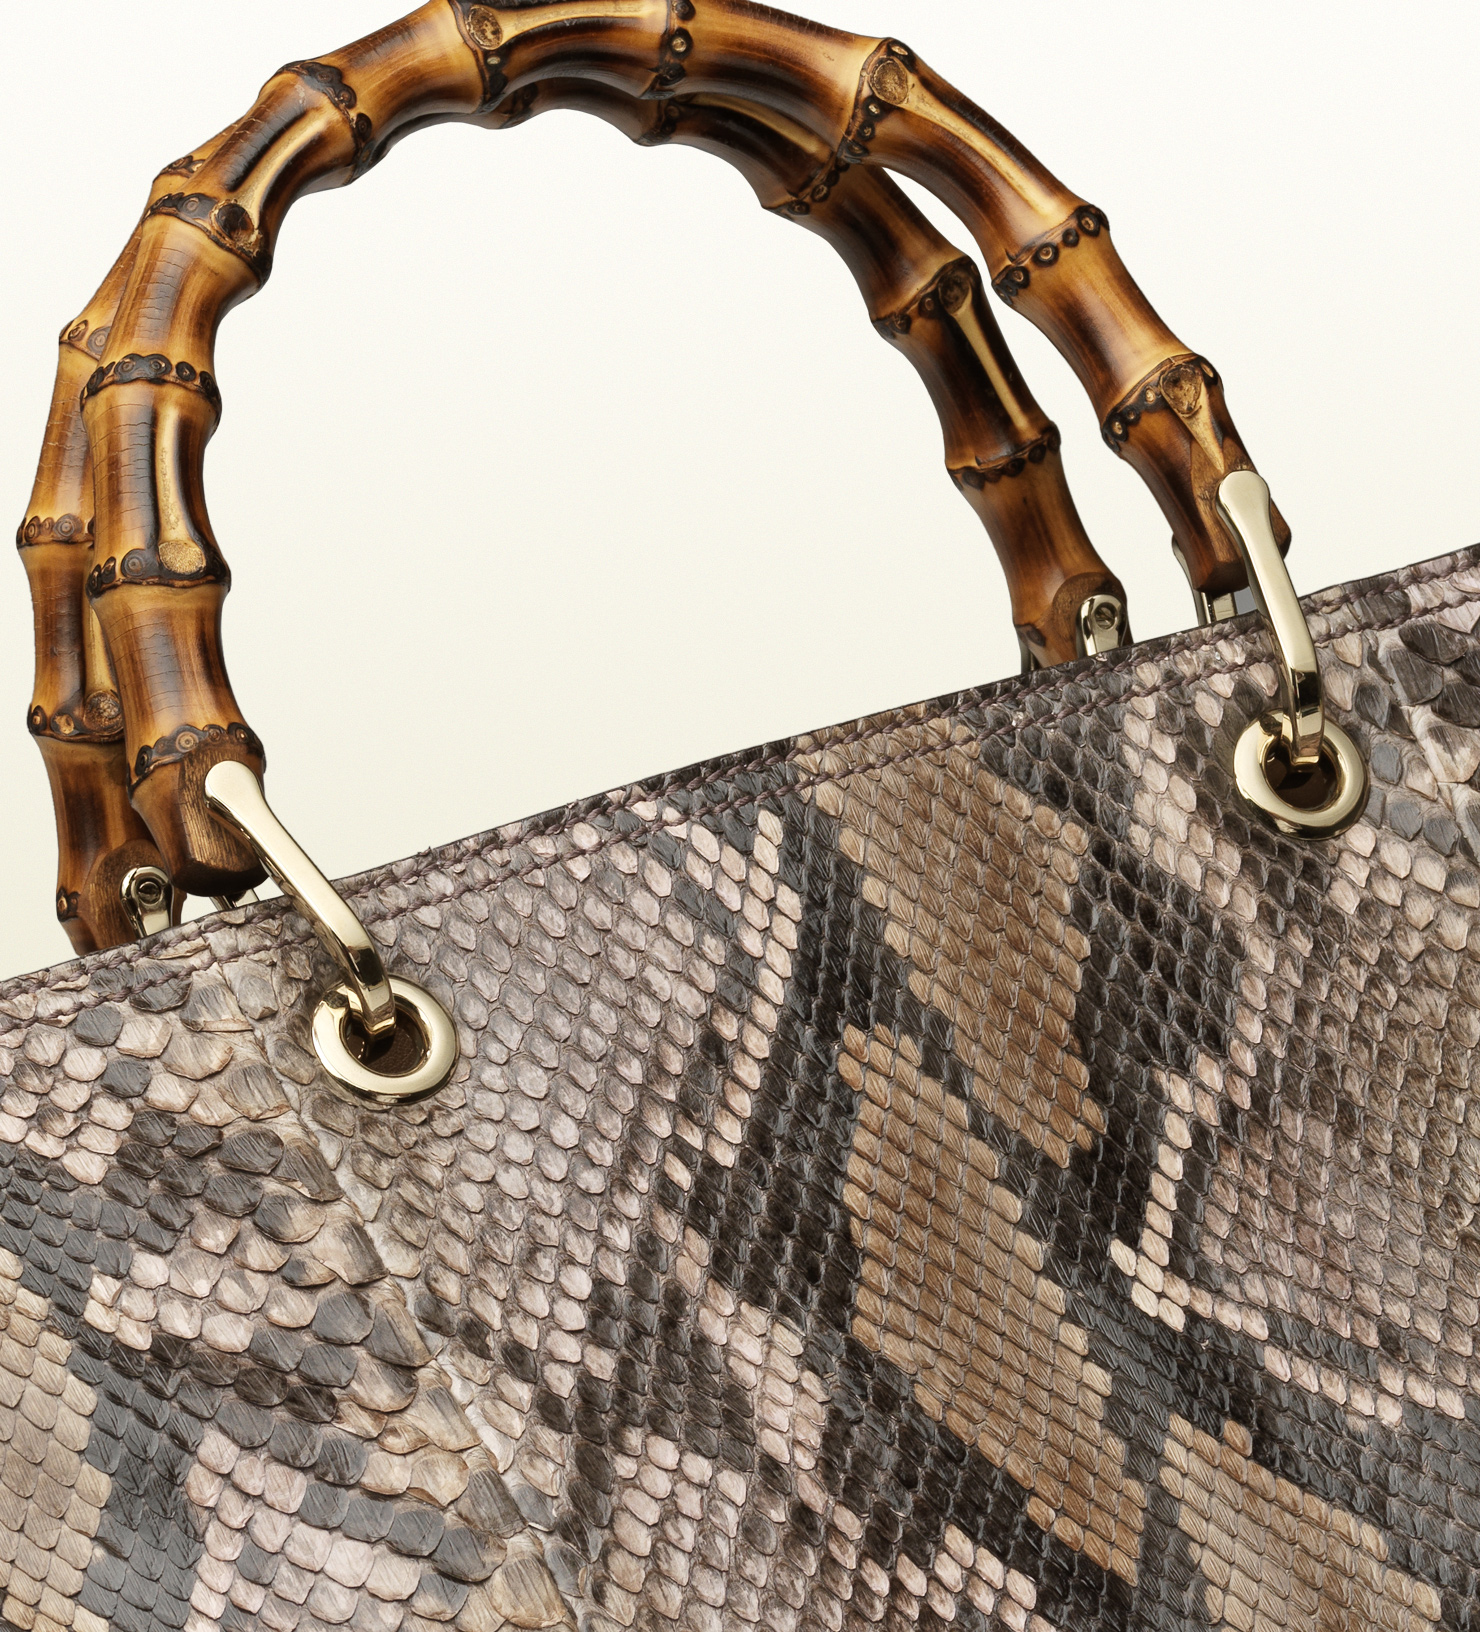 2f0f005eafe4 Gucci Bamboo Shopper Python Tote in Brown - Lyst